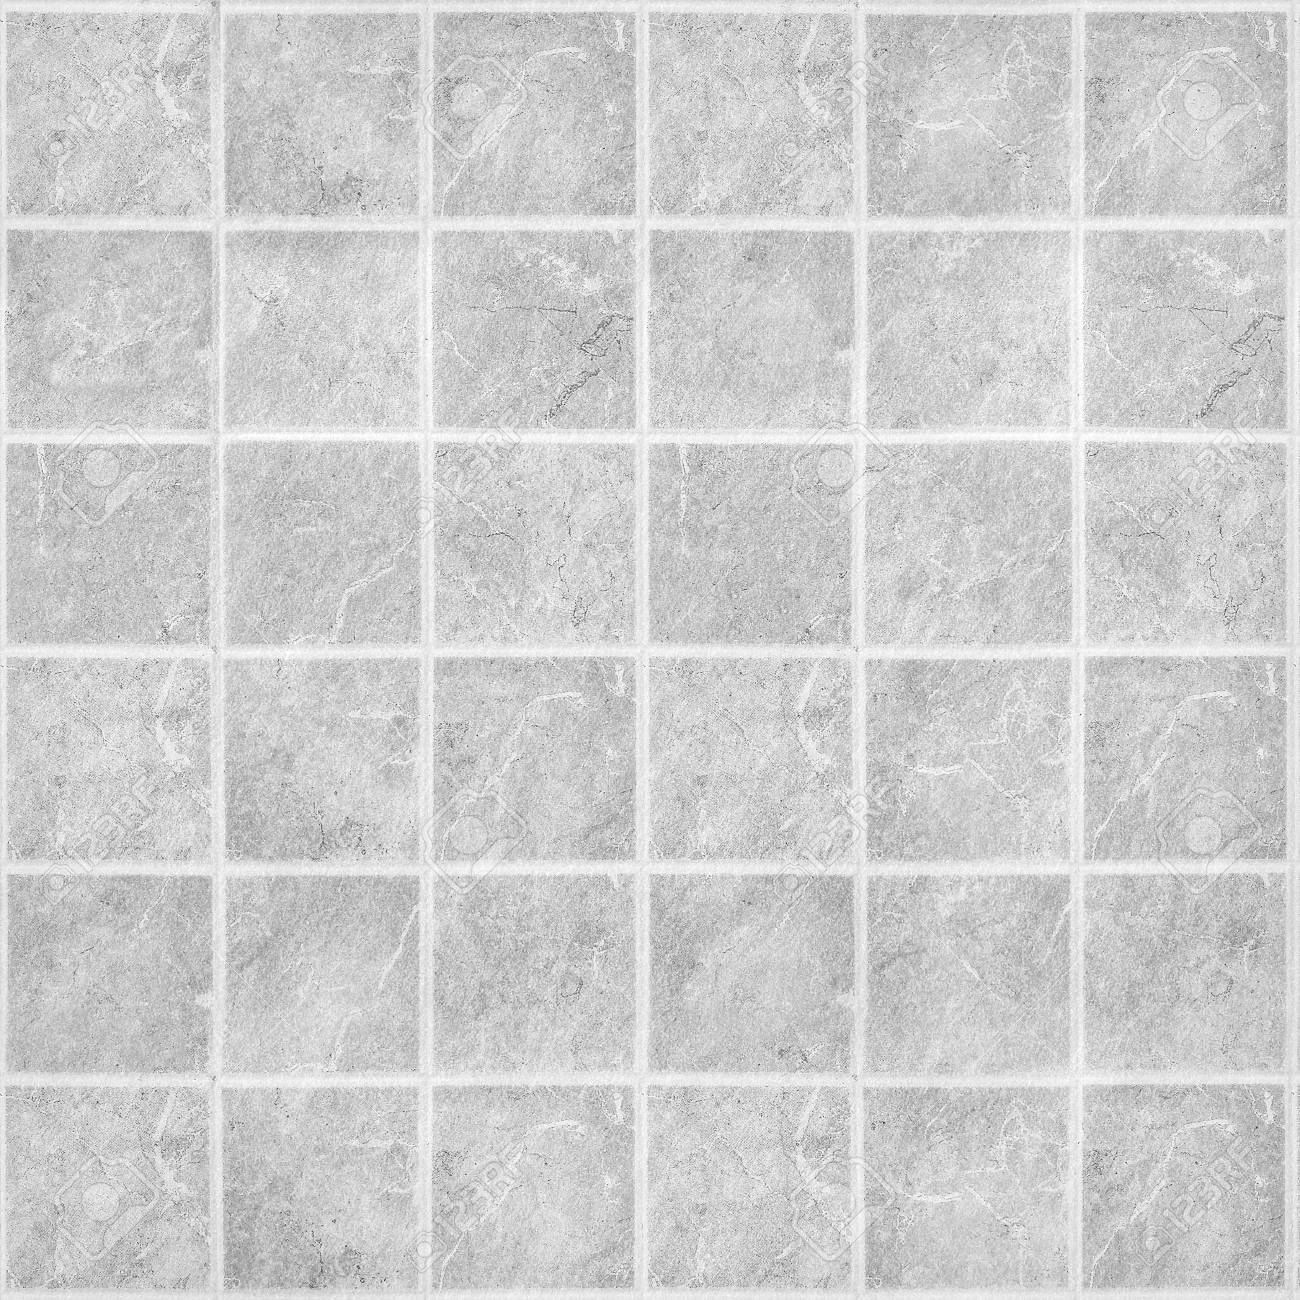 Gray Ceramic Floor Tile Surface Texture Backgruond Stock Photo